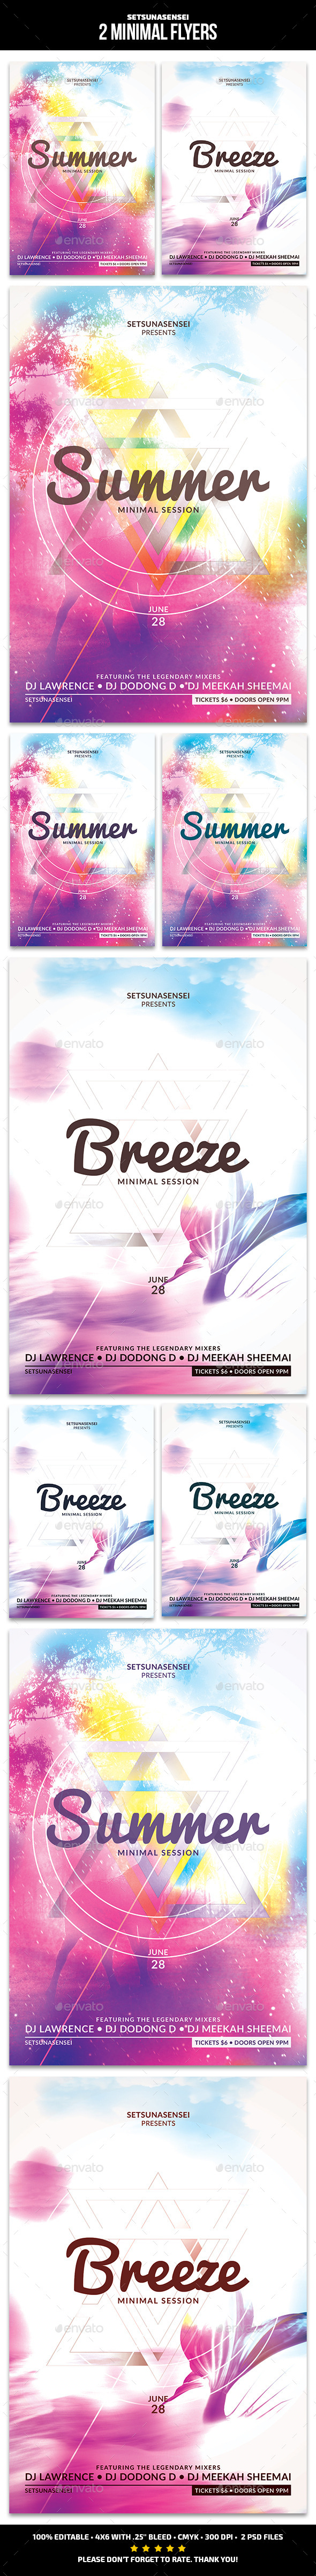 GraphicRiver 2 Minimal Flyers 11111865